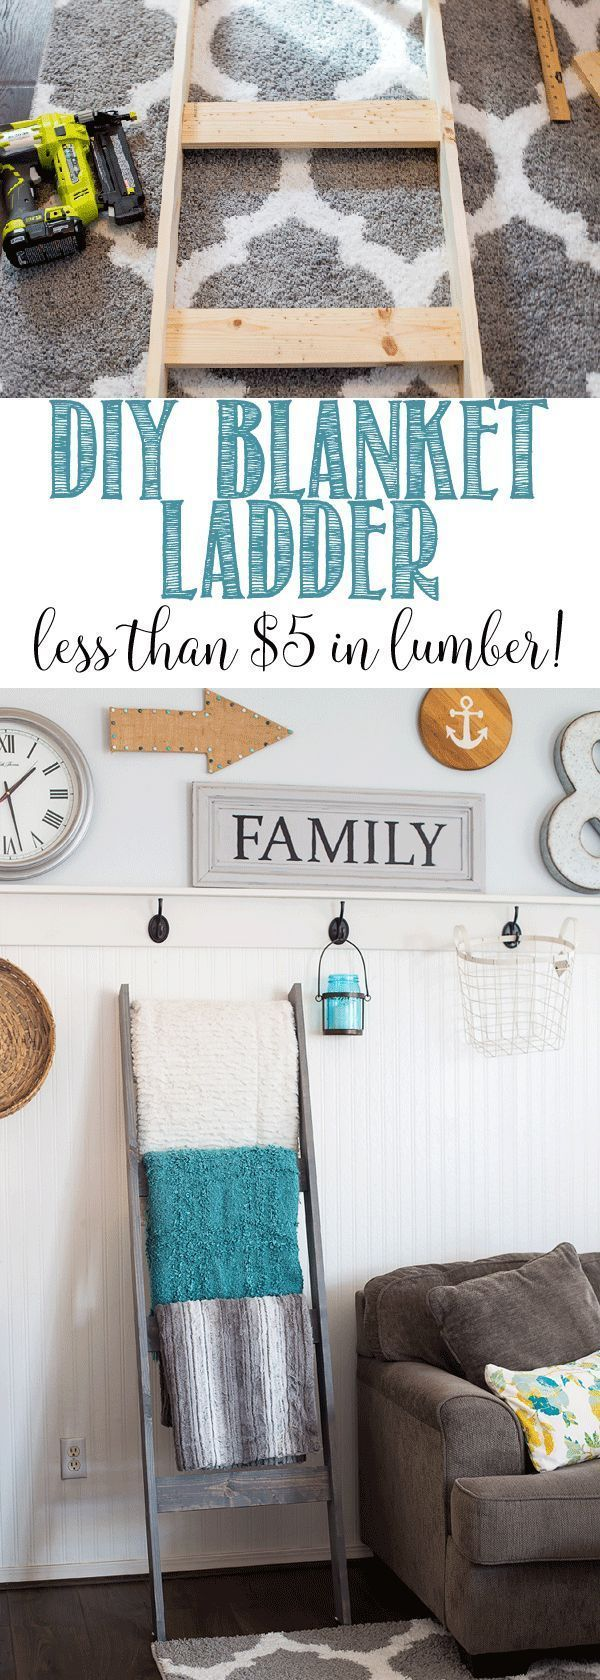 DIY Blanket Ladder For Lower Than $5 In Lumber!!!!  Nice Step-by-step Tutorial S…